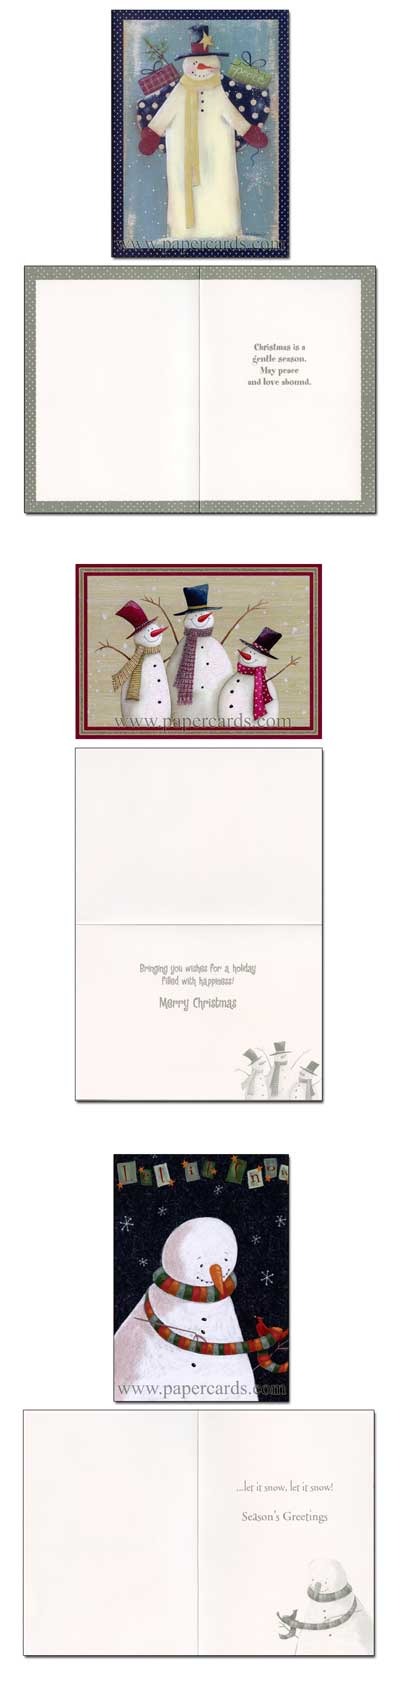 Let It Snow Keepsake Assortment 21 Cards Amp 21 Envelopes